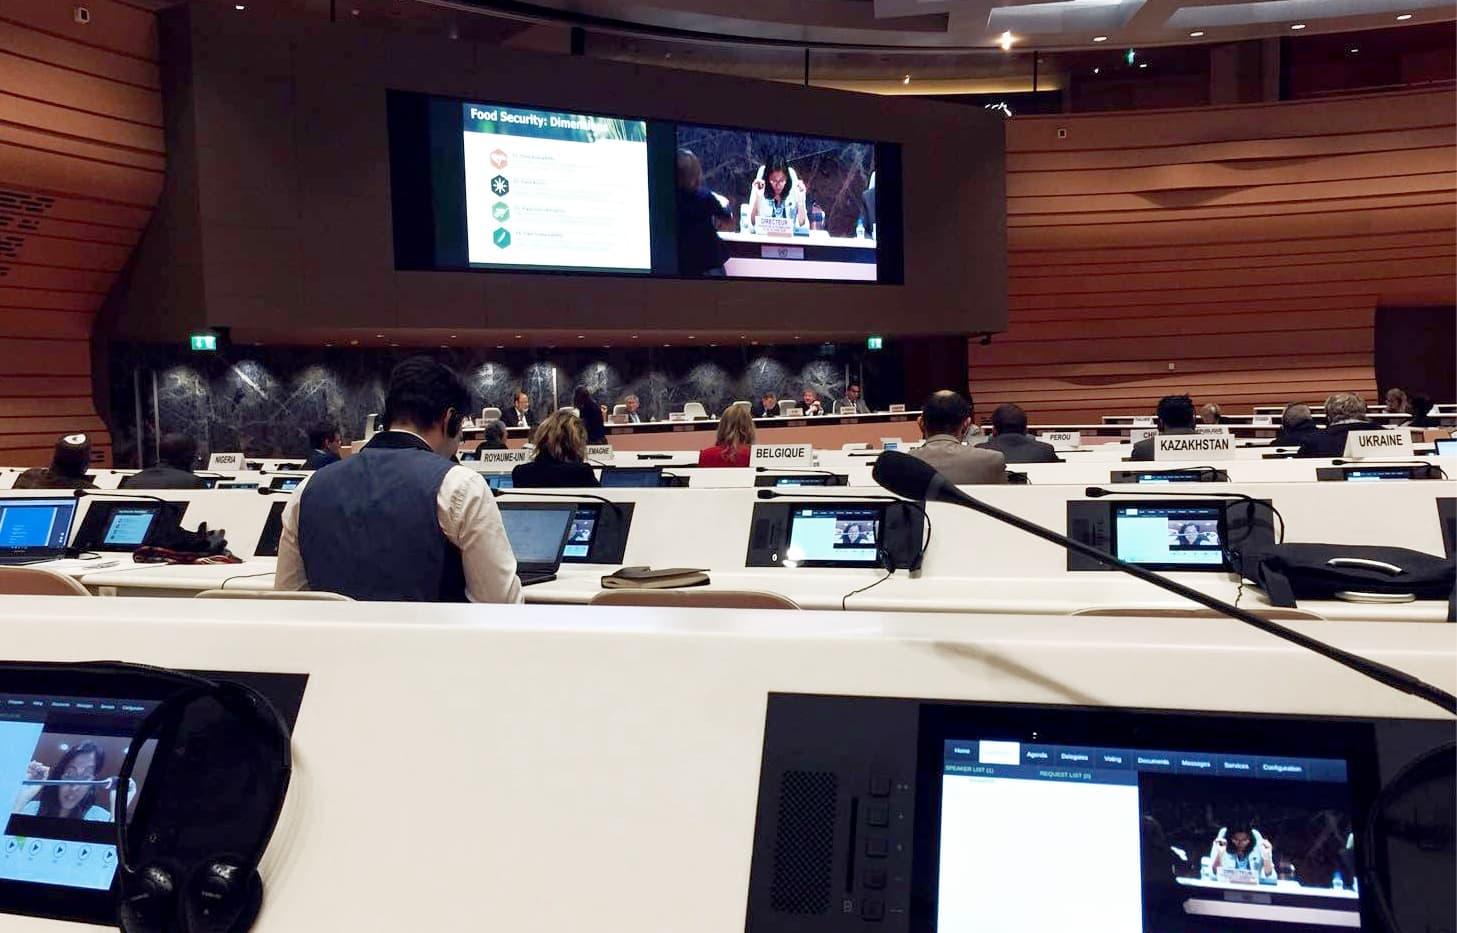 AG_UN Pix4D Touting Drone Mapping Solutions at United Nations Panel